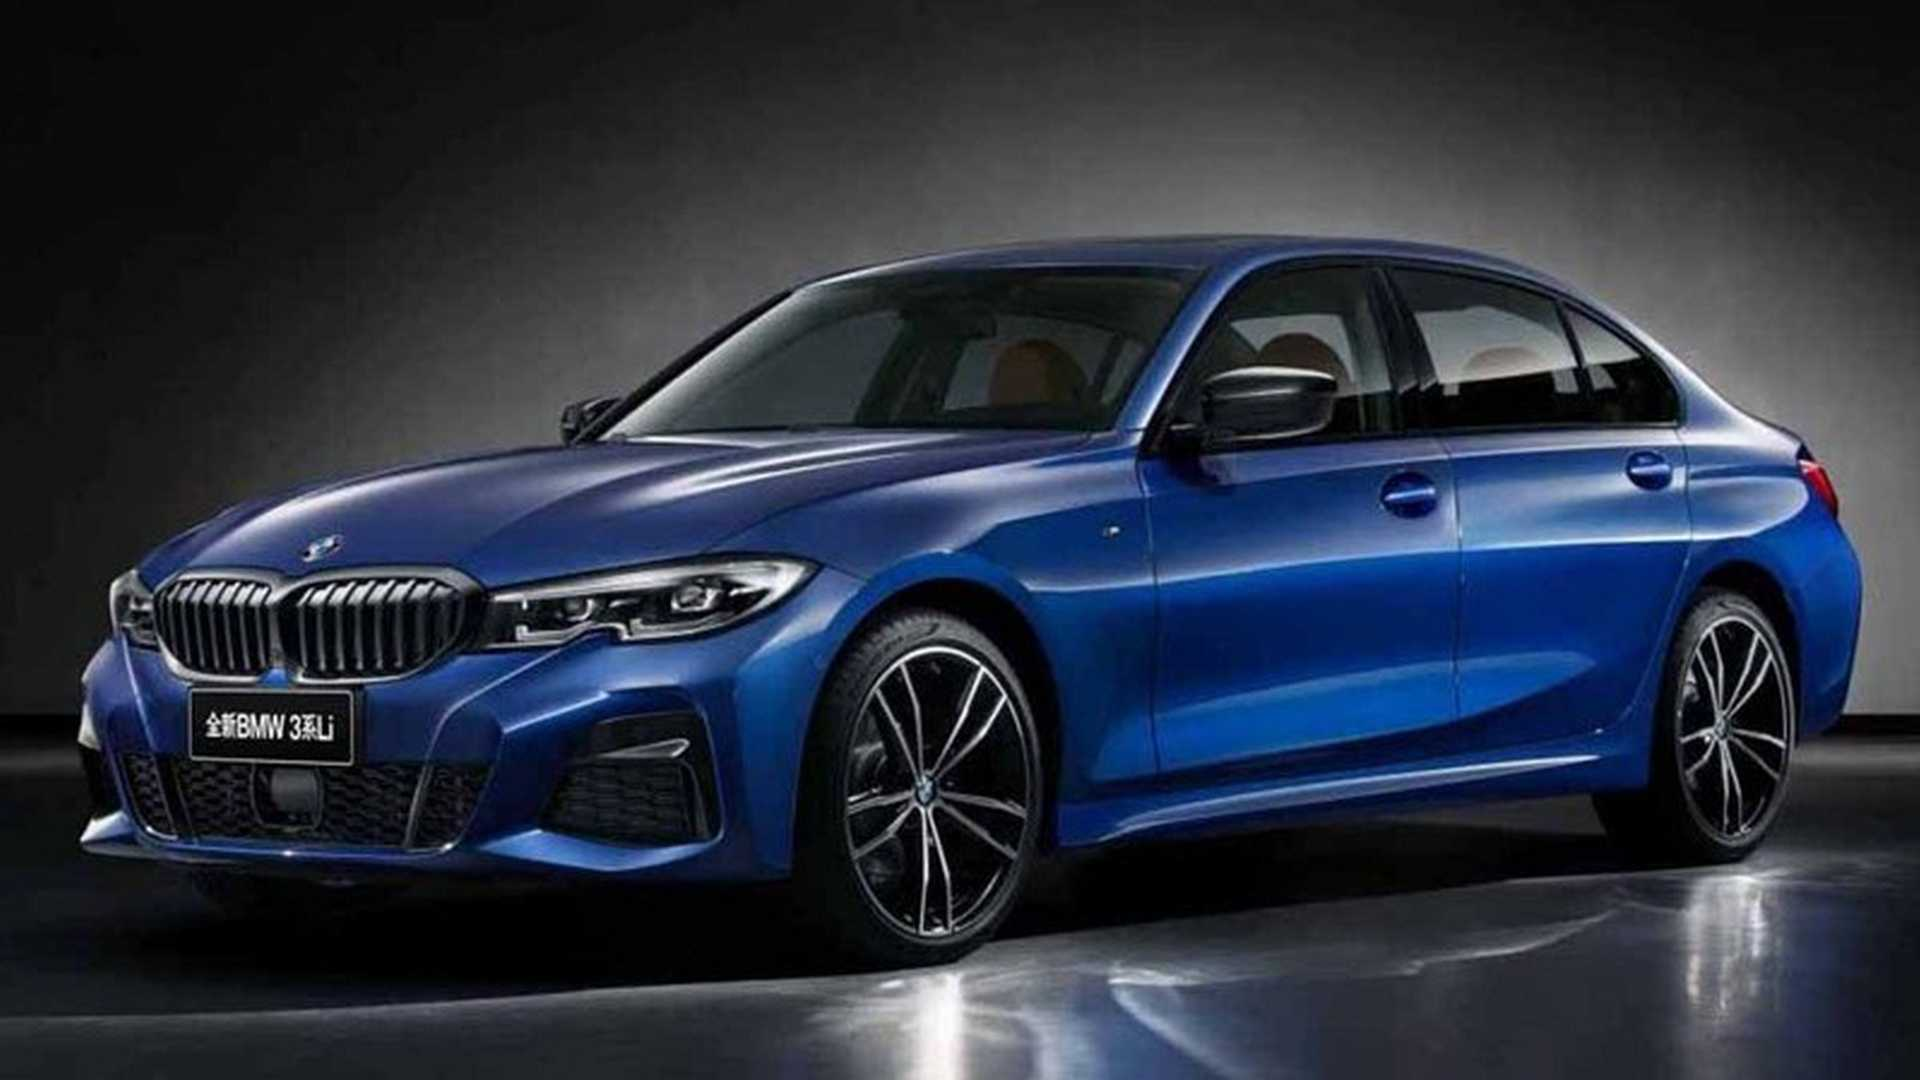 2019 bmw 3 series long wheelbase cn spec2